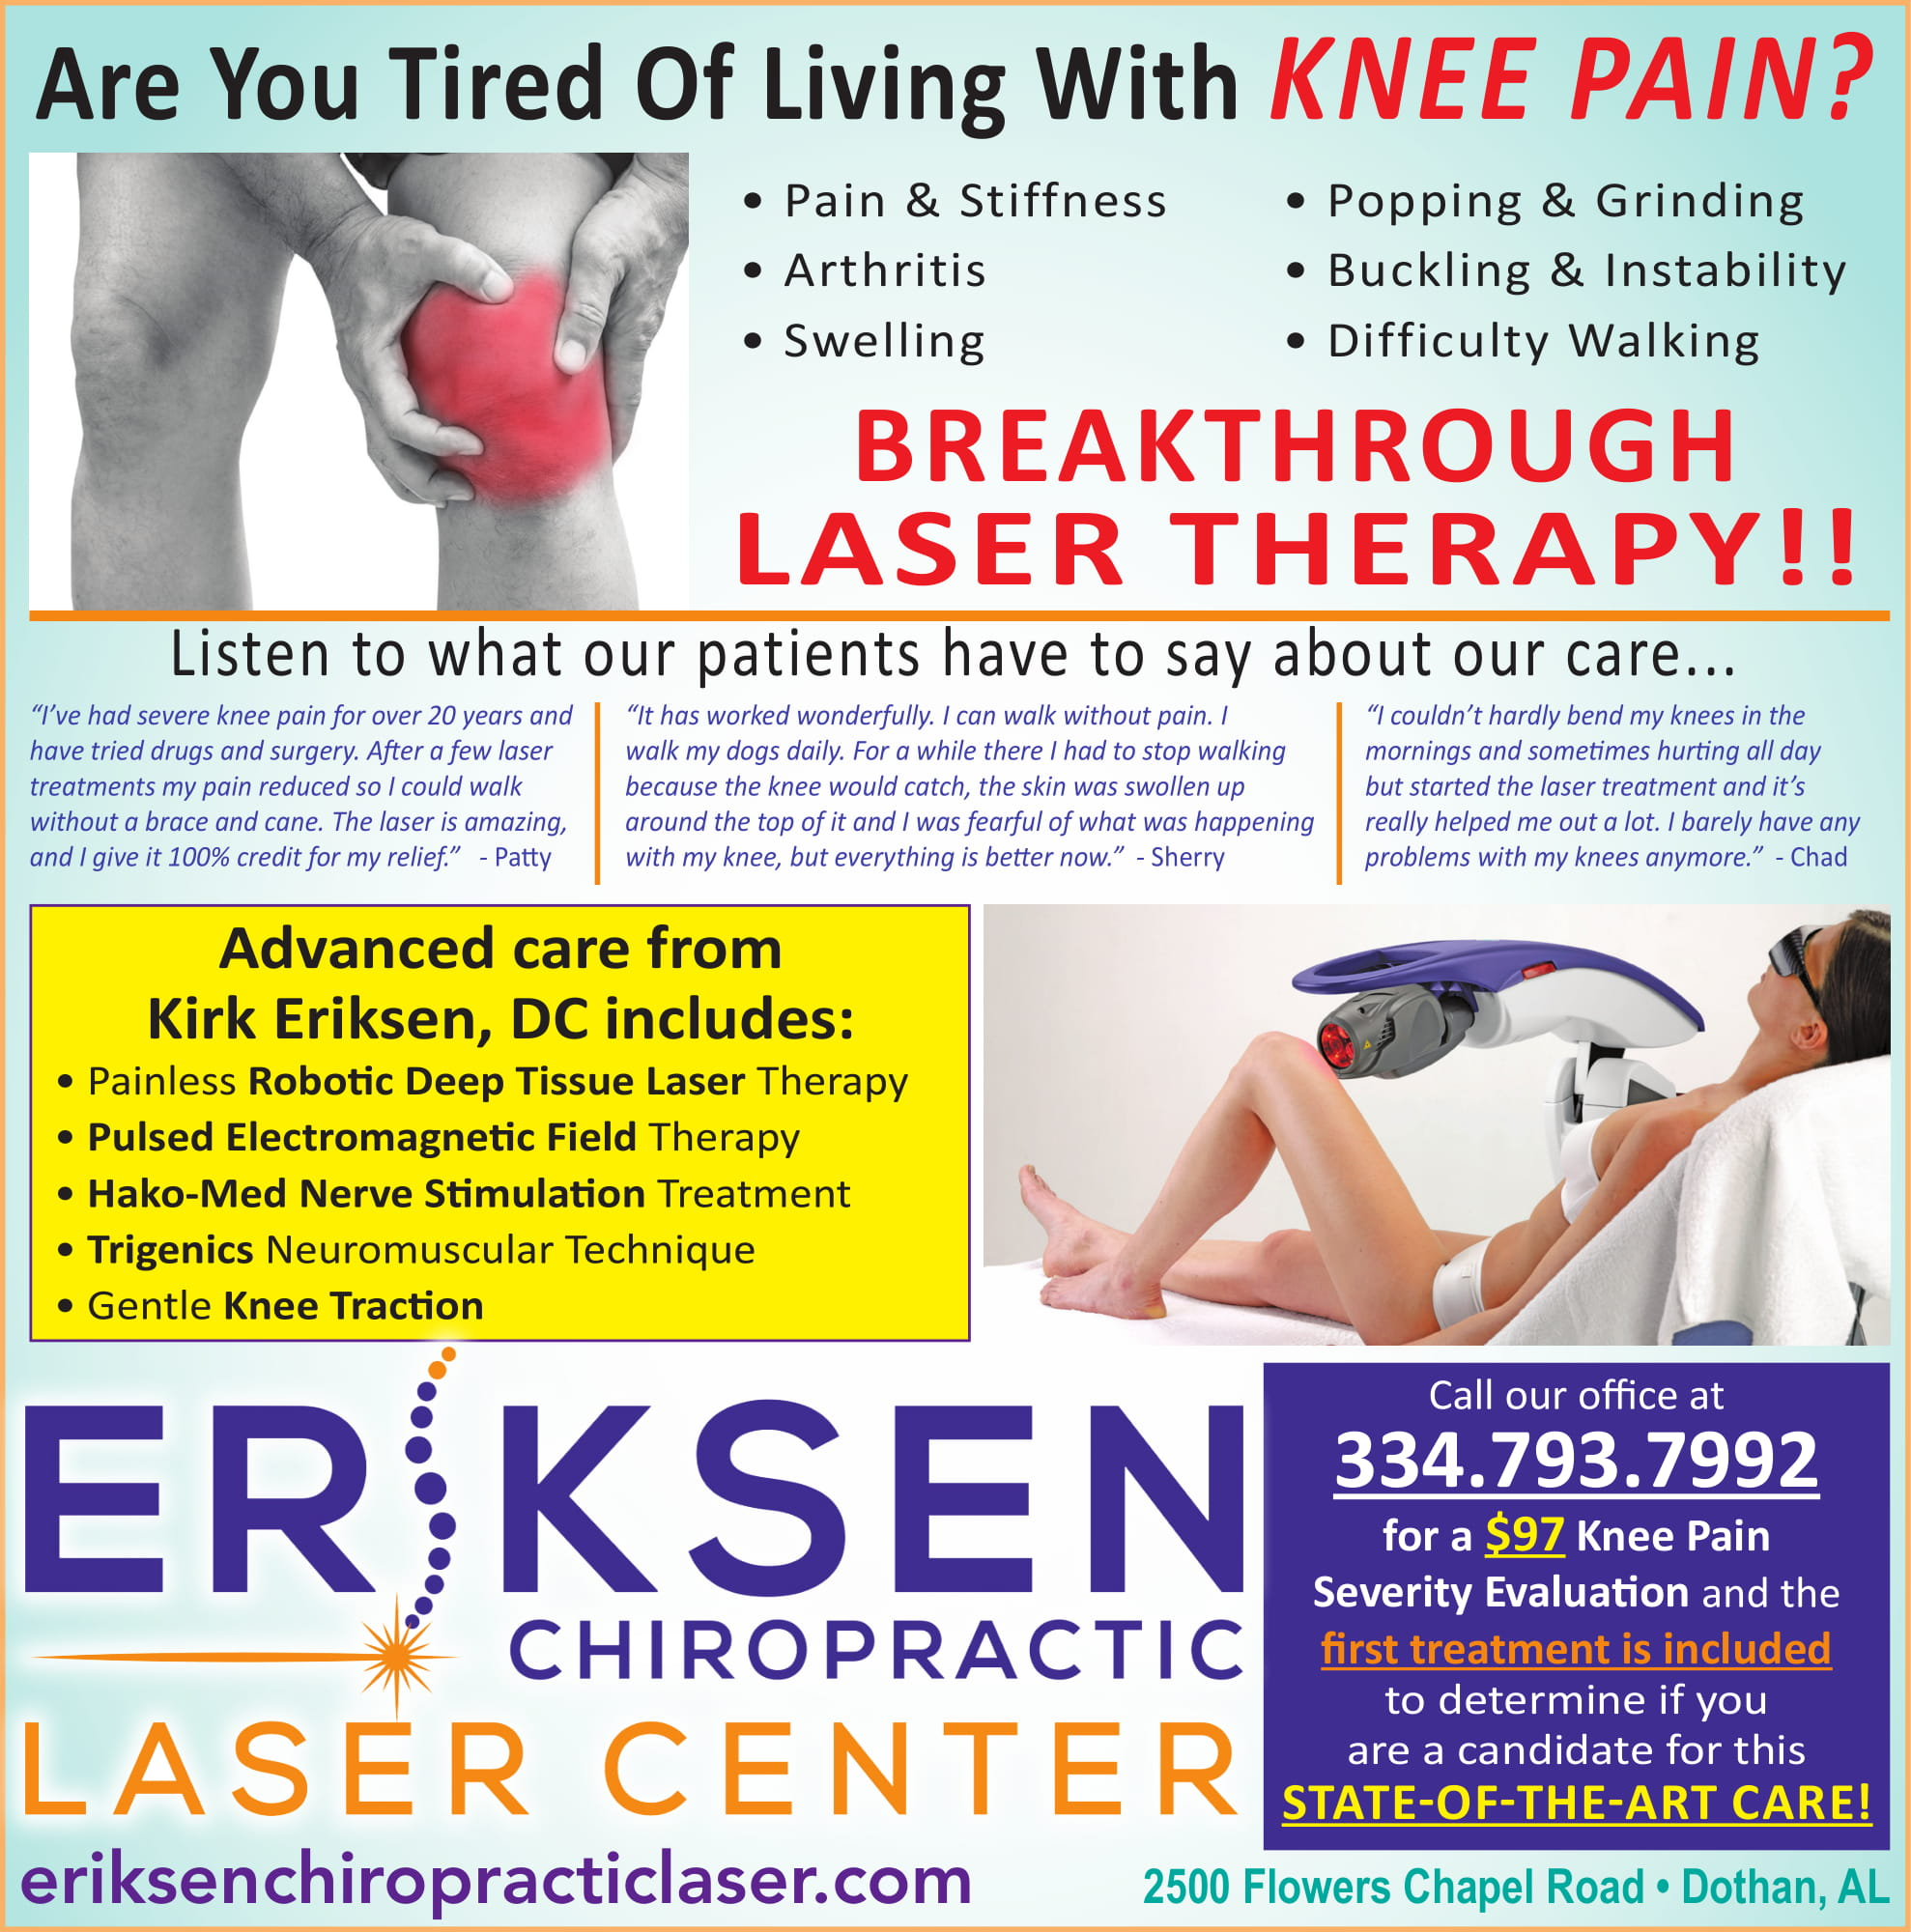 Arthritis: Should I Have Knee Replacement Surgery?